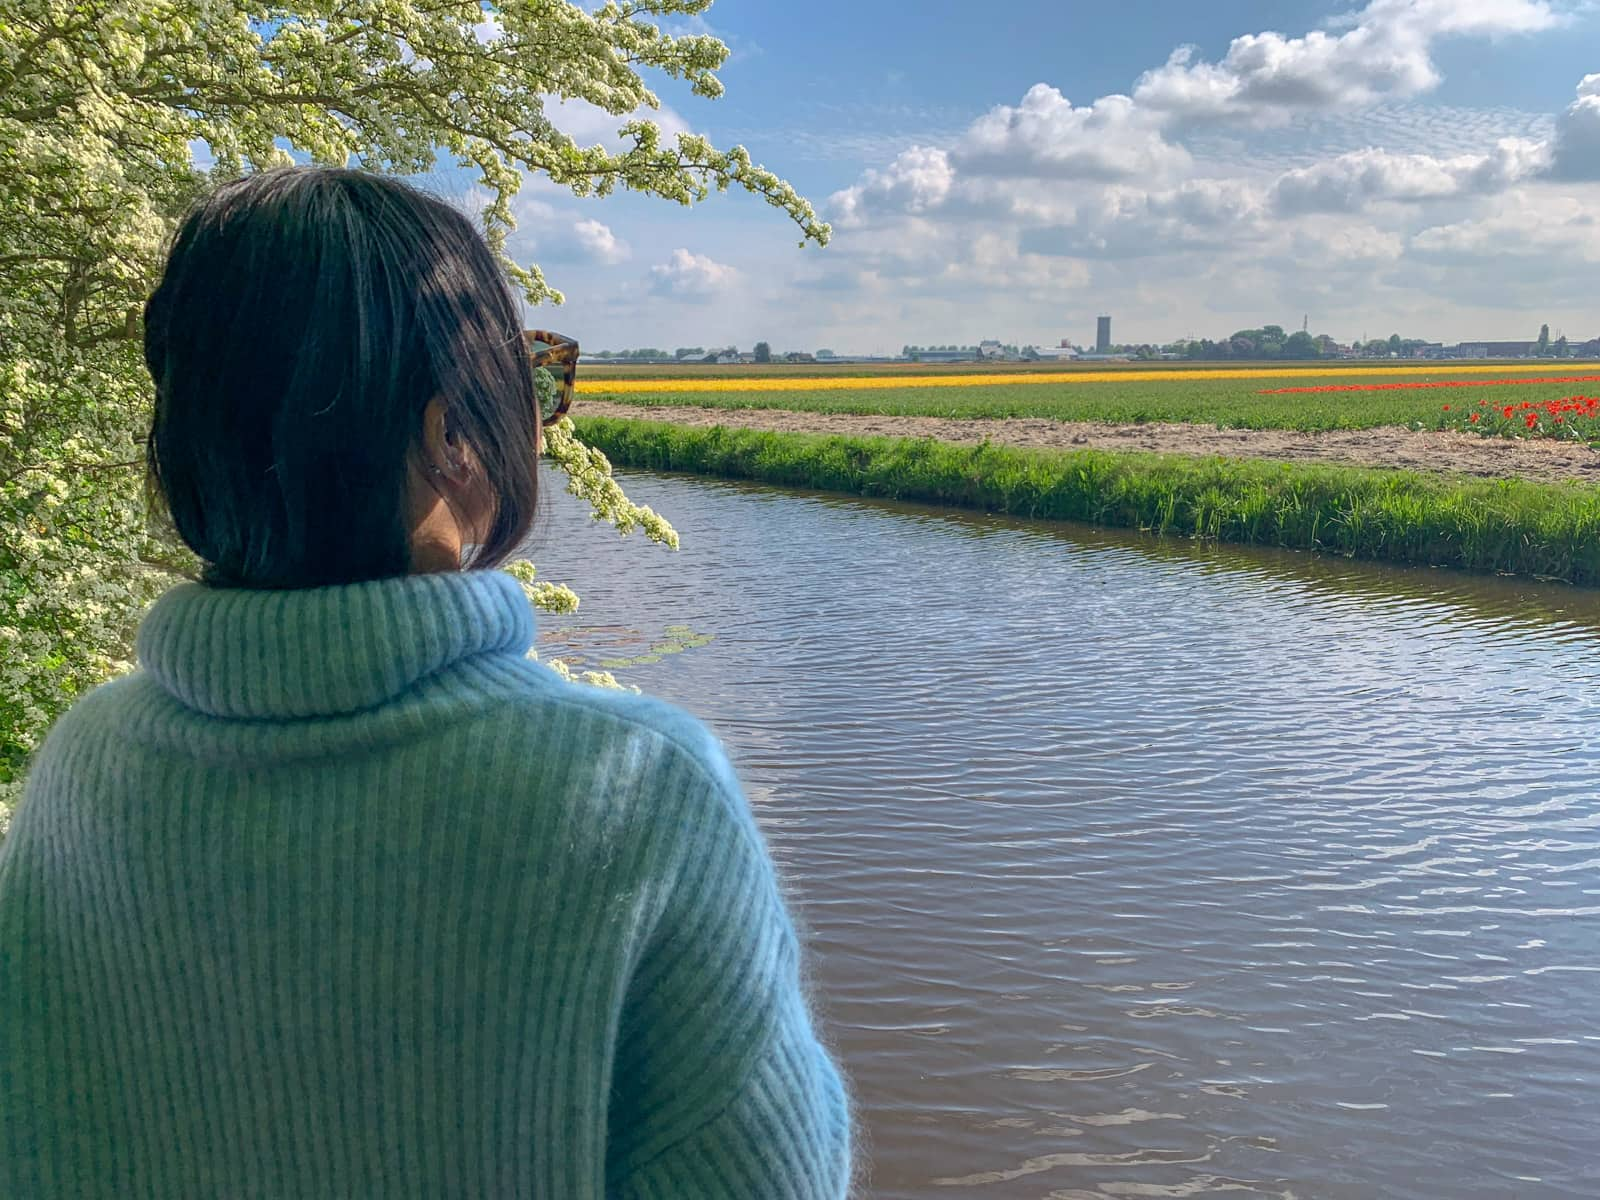 A woman with dark hair, wearing a blue sweater, facing away from the camera and looking out over a small river and towards fields of red, yellow and pink tulips